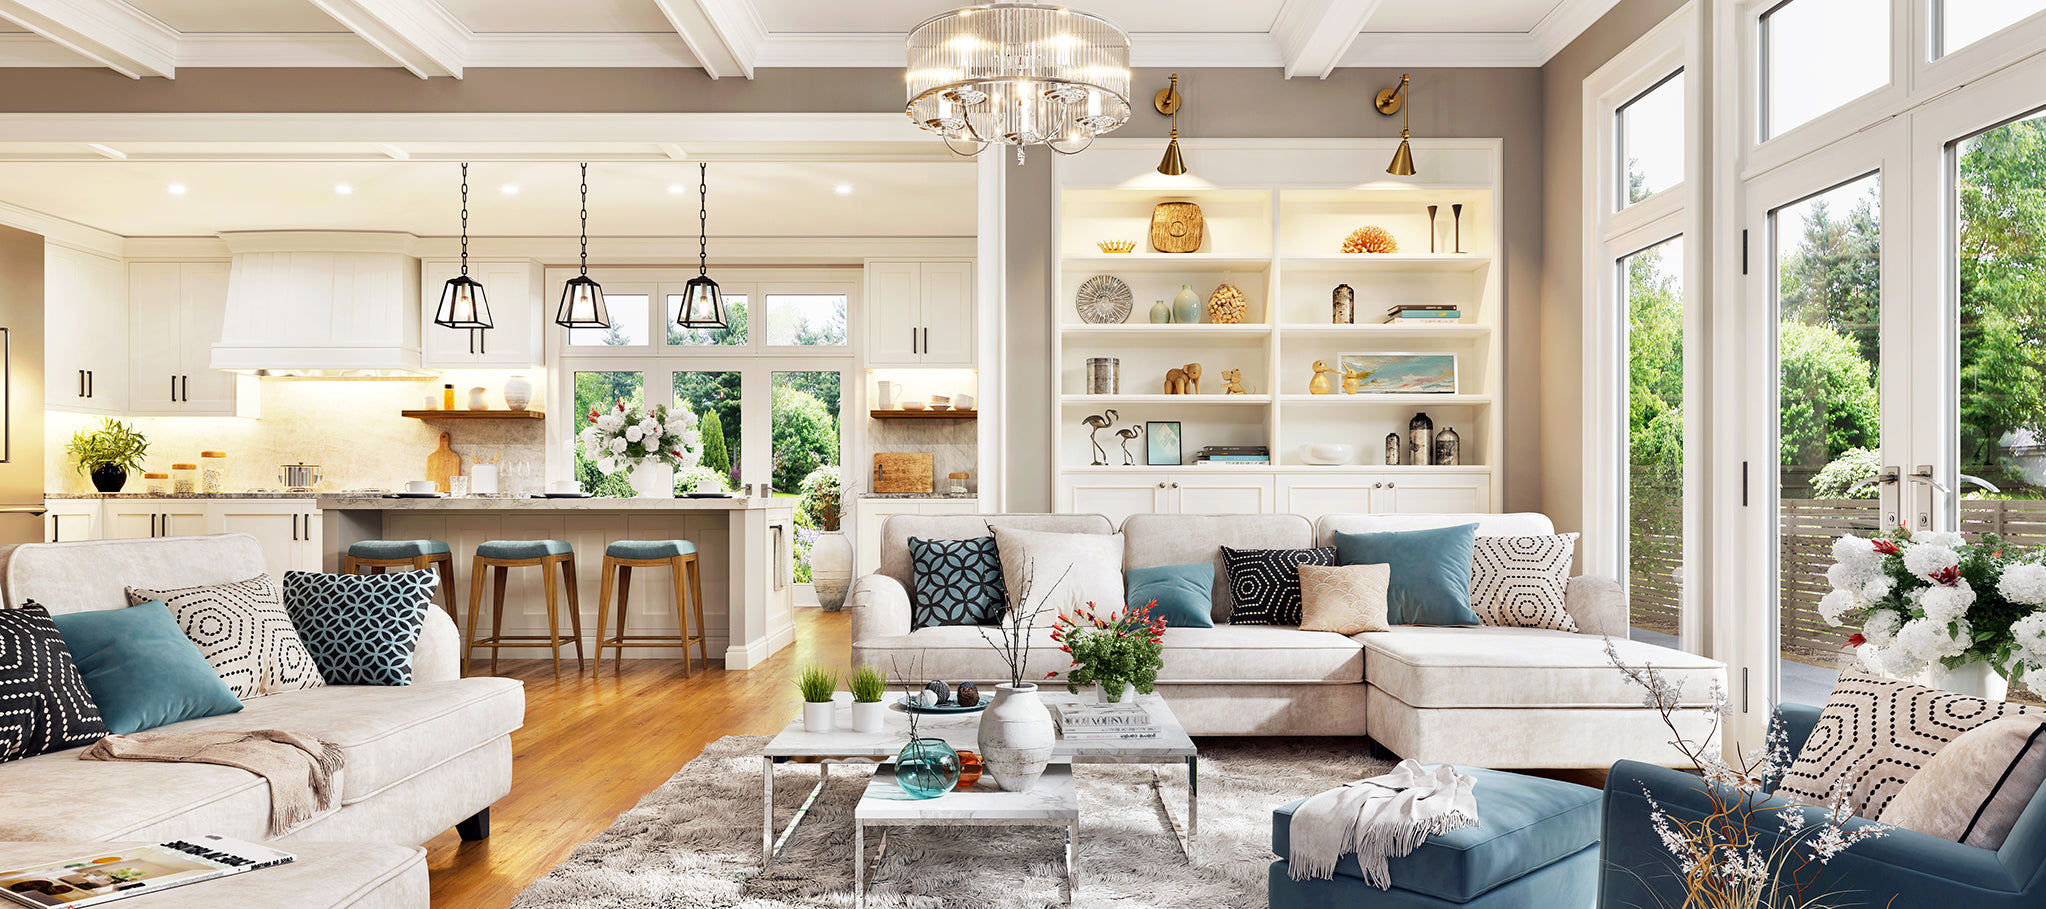 How to Style your Living Room on a Budget